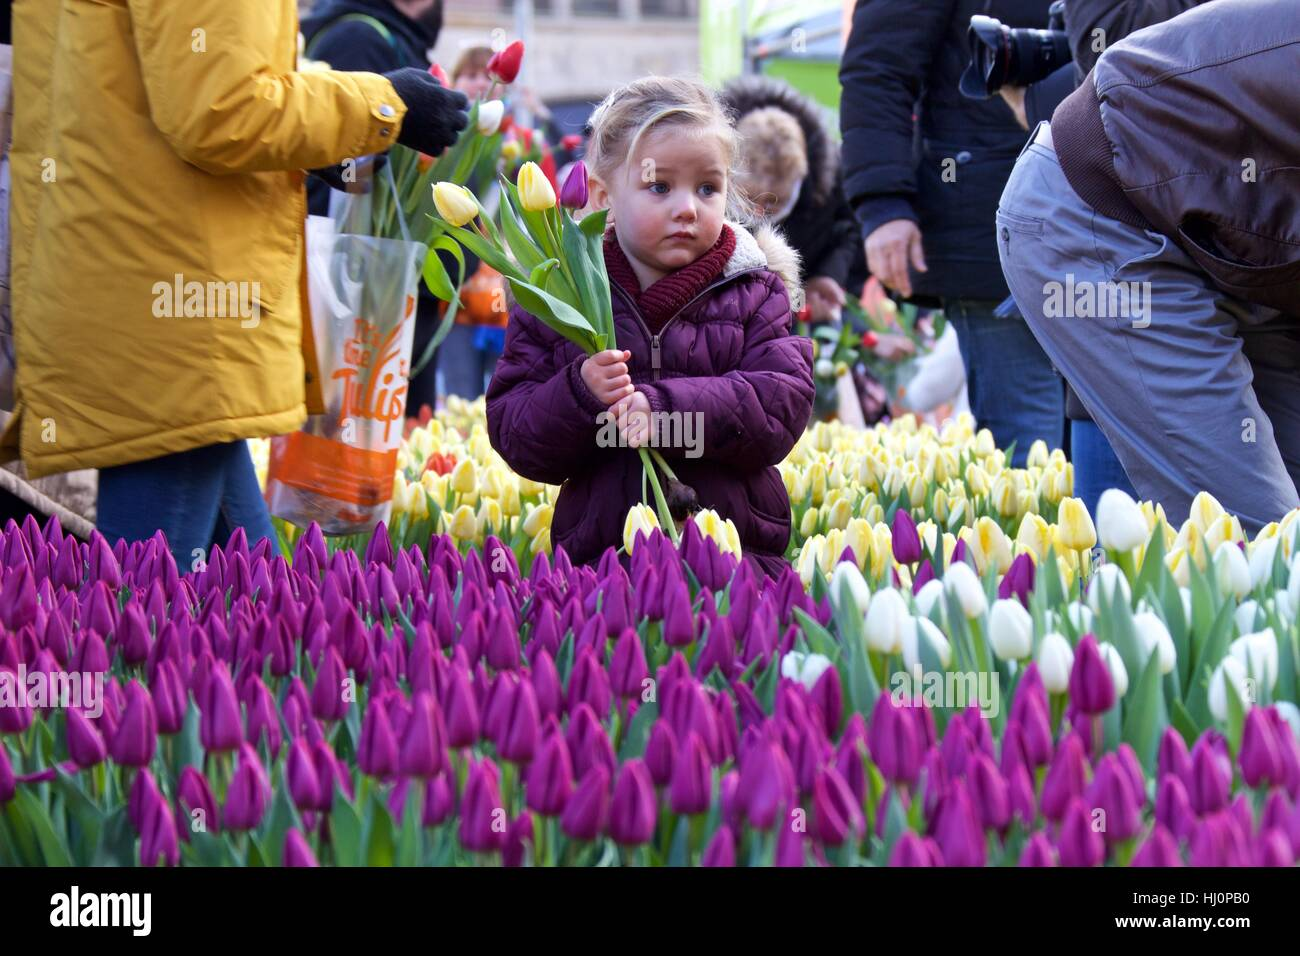 Amsterdam, Netherlands. 21st Jan, 2017. A girl holds tulips during the 2017 Dutch National Tulip Day in Amsterdam, Stock Photo